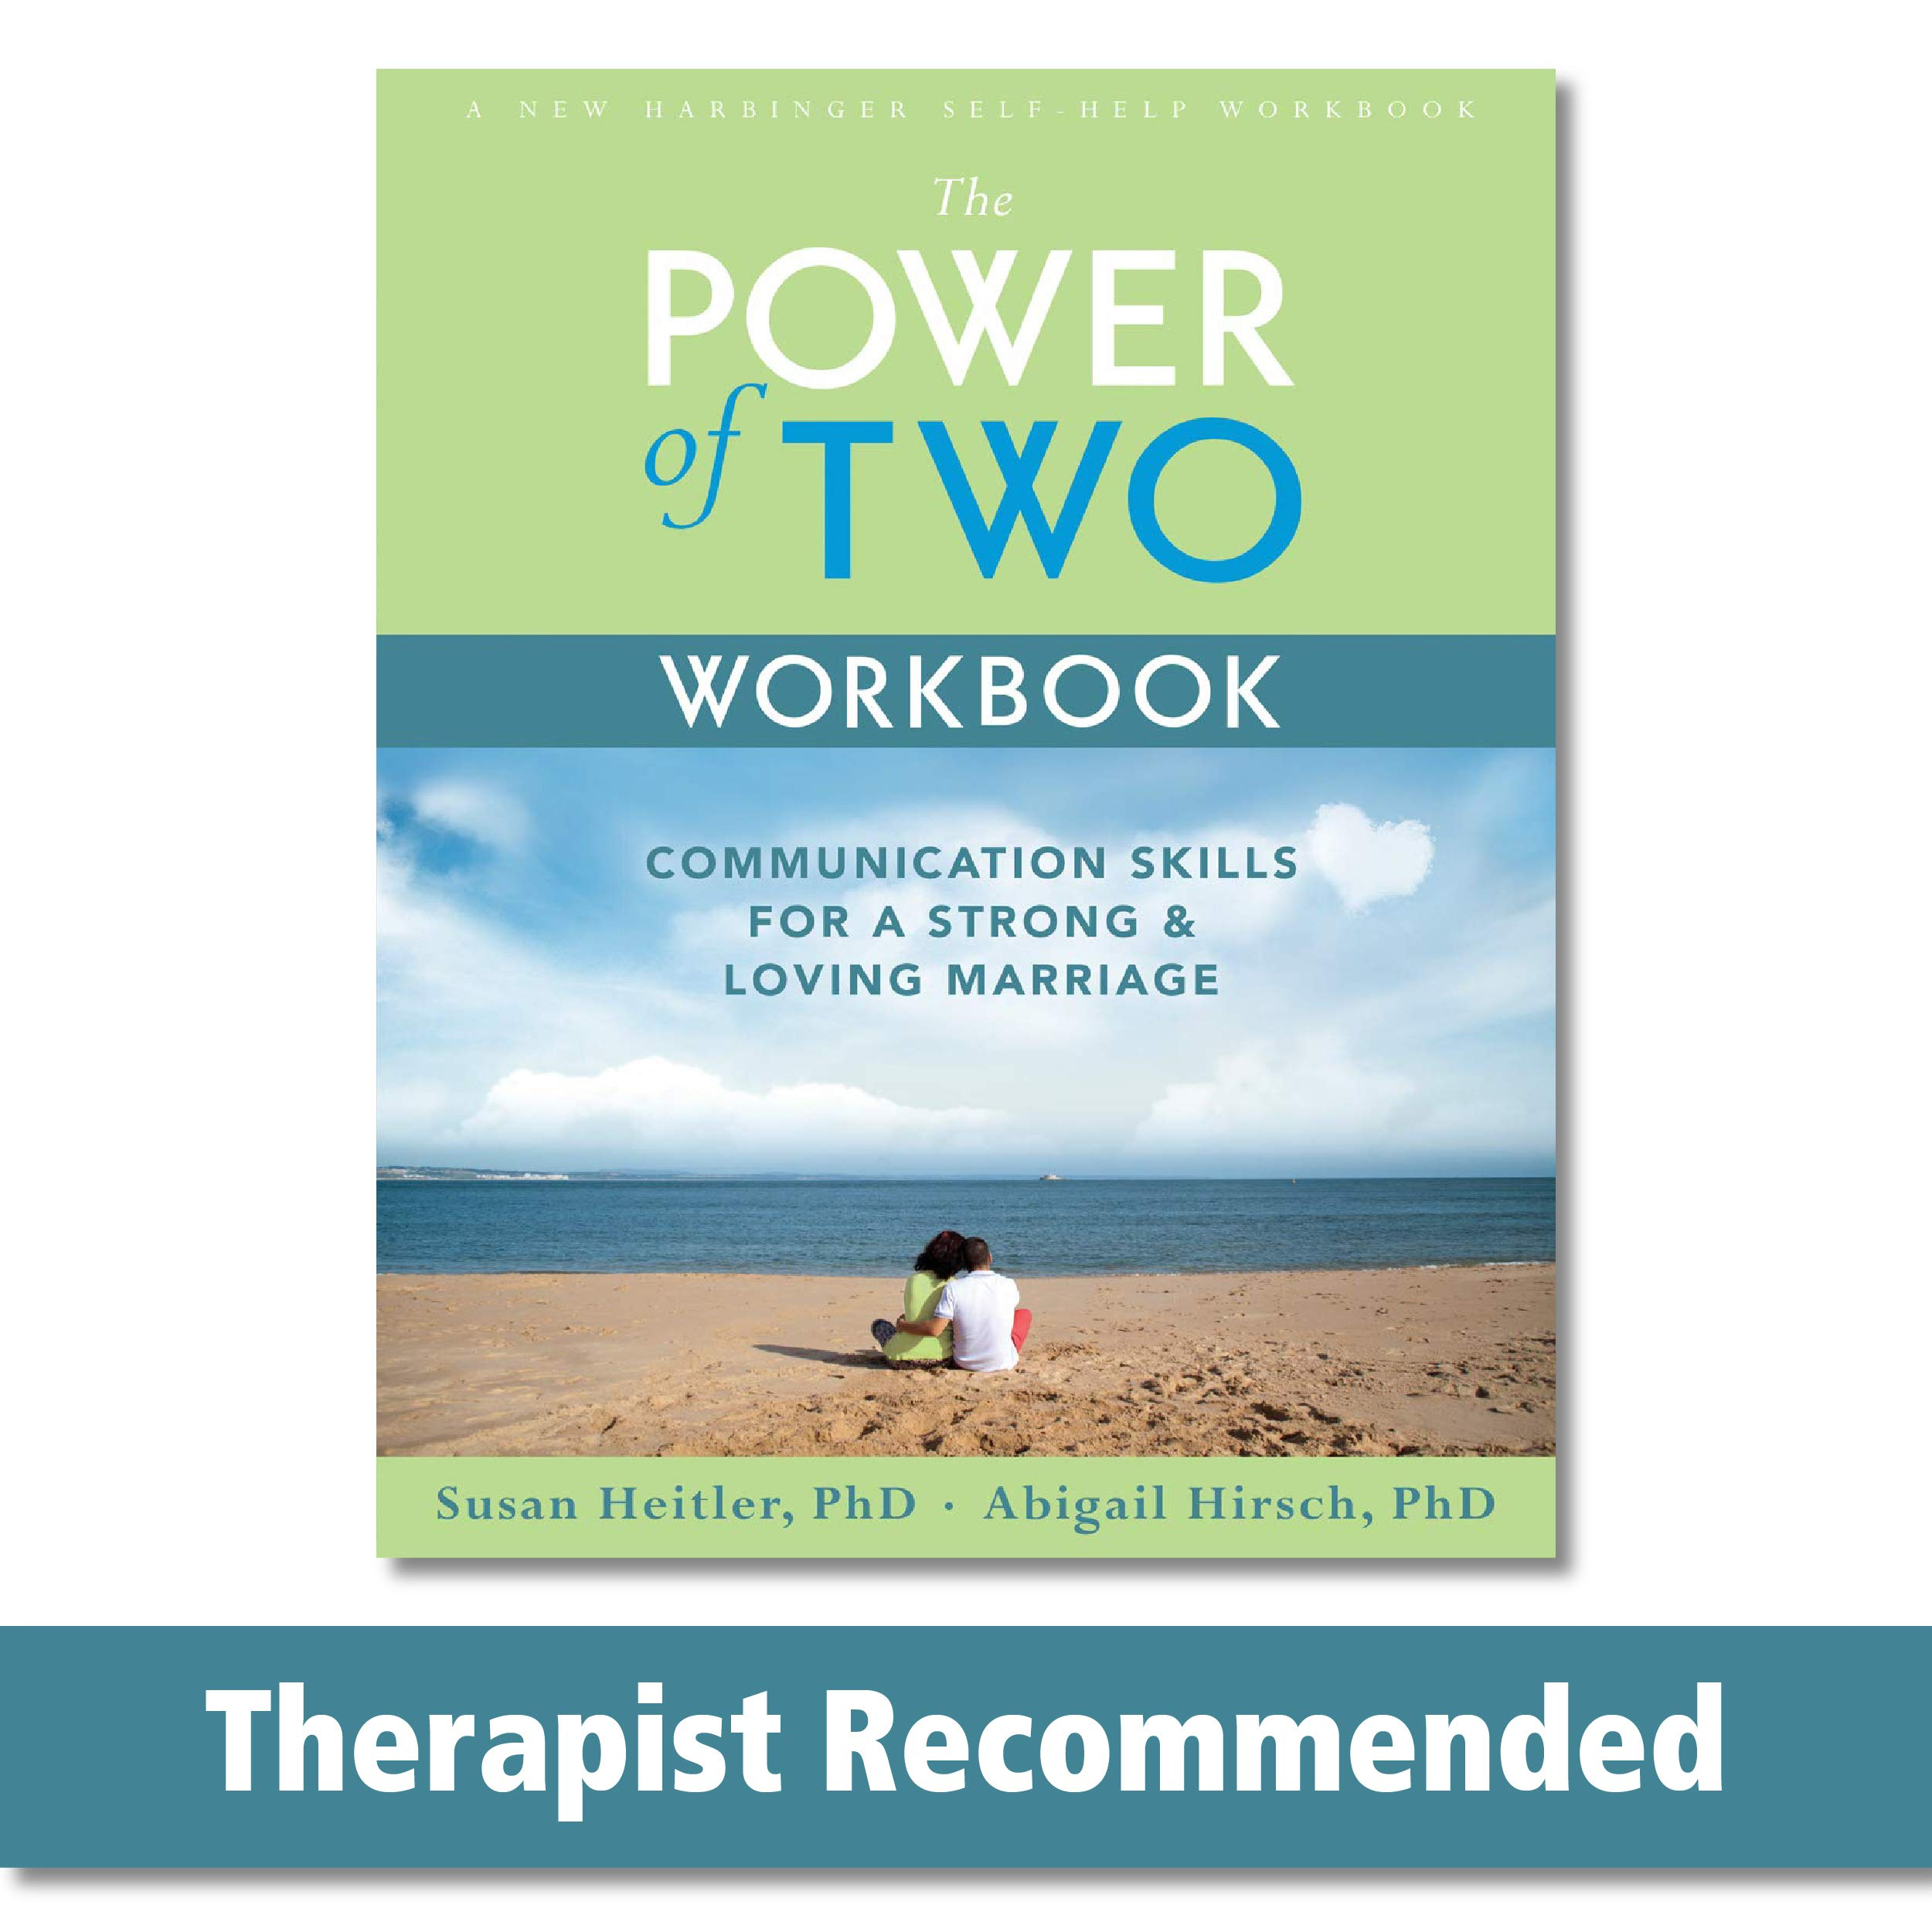 Download The Power Of Two Workbook: Communication Skills For A Strong & Loving Marriage (A New Harbinger Self-Help Workbook) 